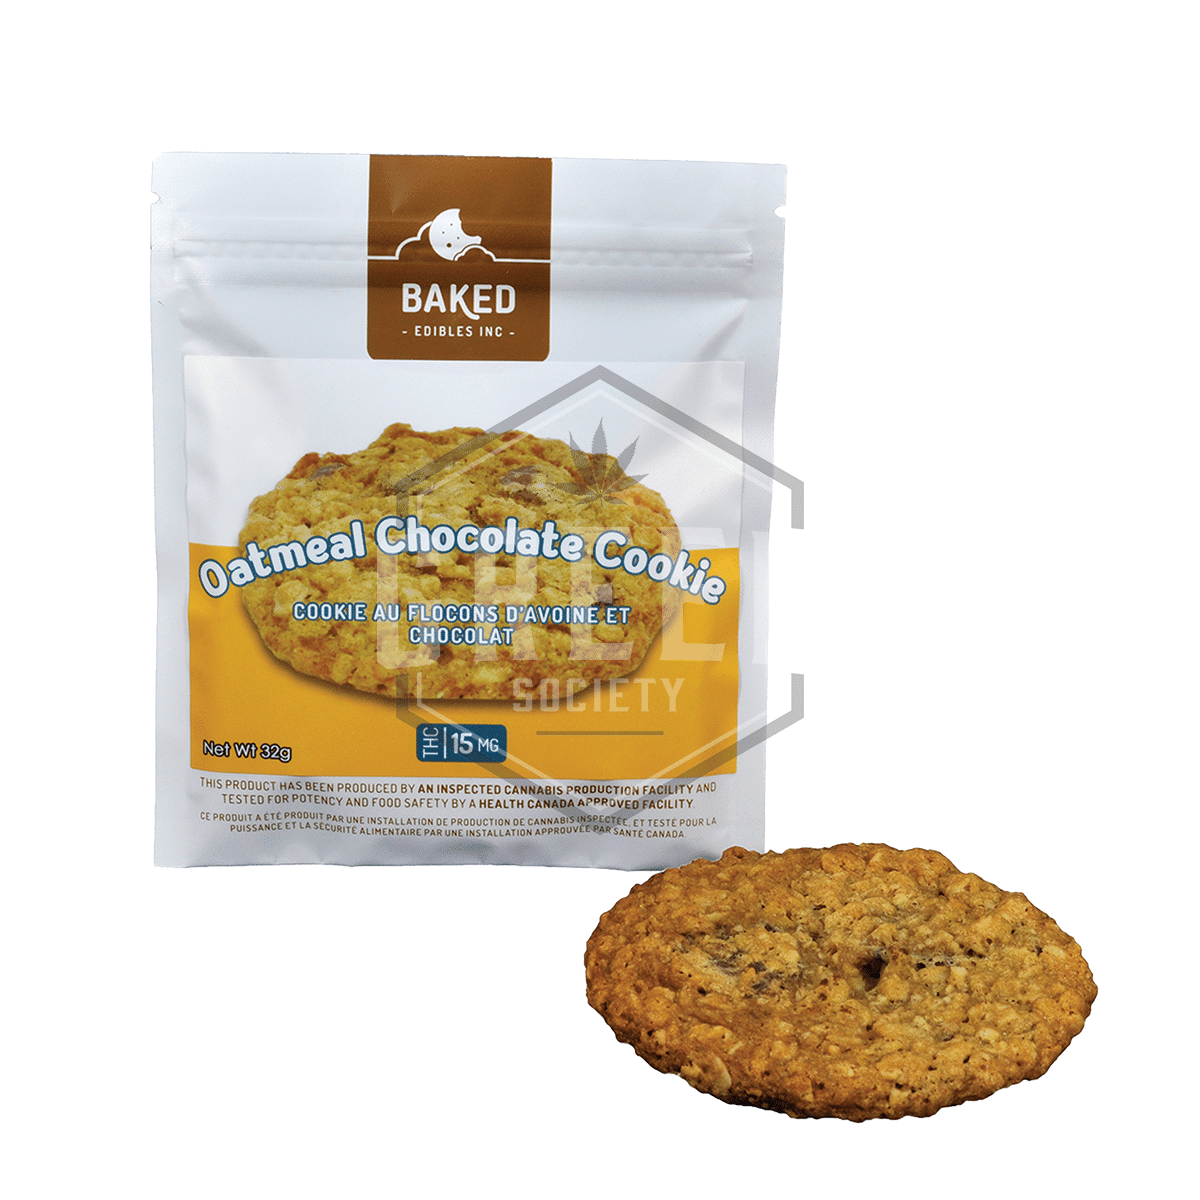 Oatmeal Chocolate Cookie by Baked Edibles by Green Society - Image © 2018 Green Society. All Rights Reserved.